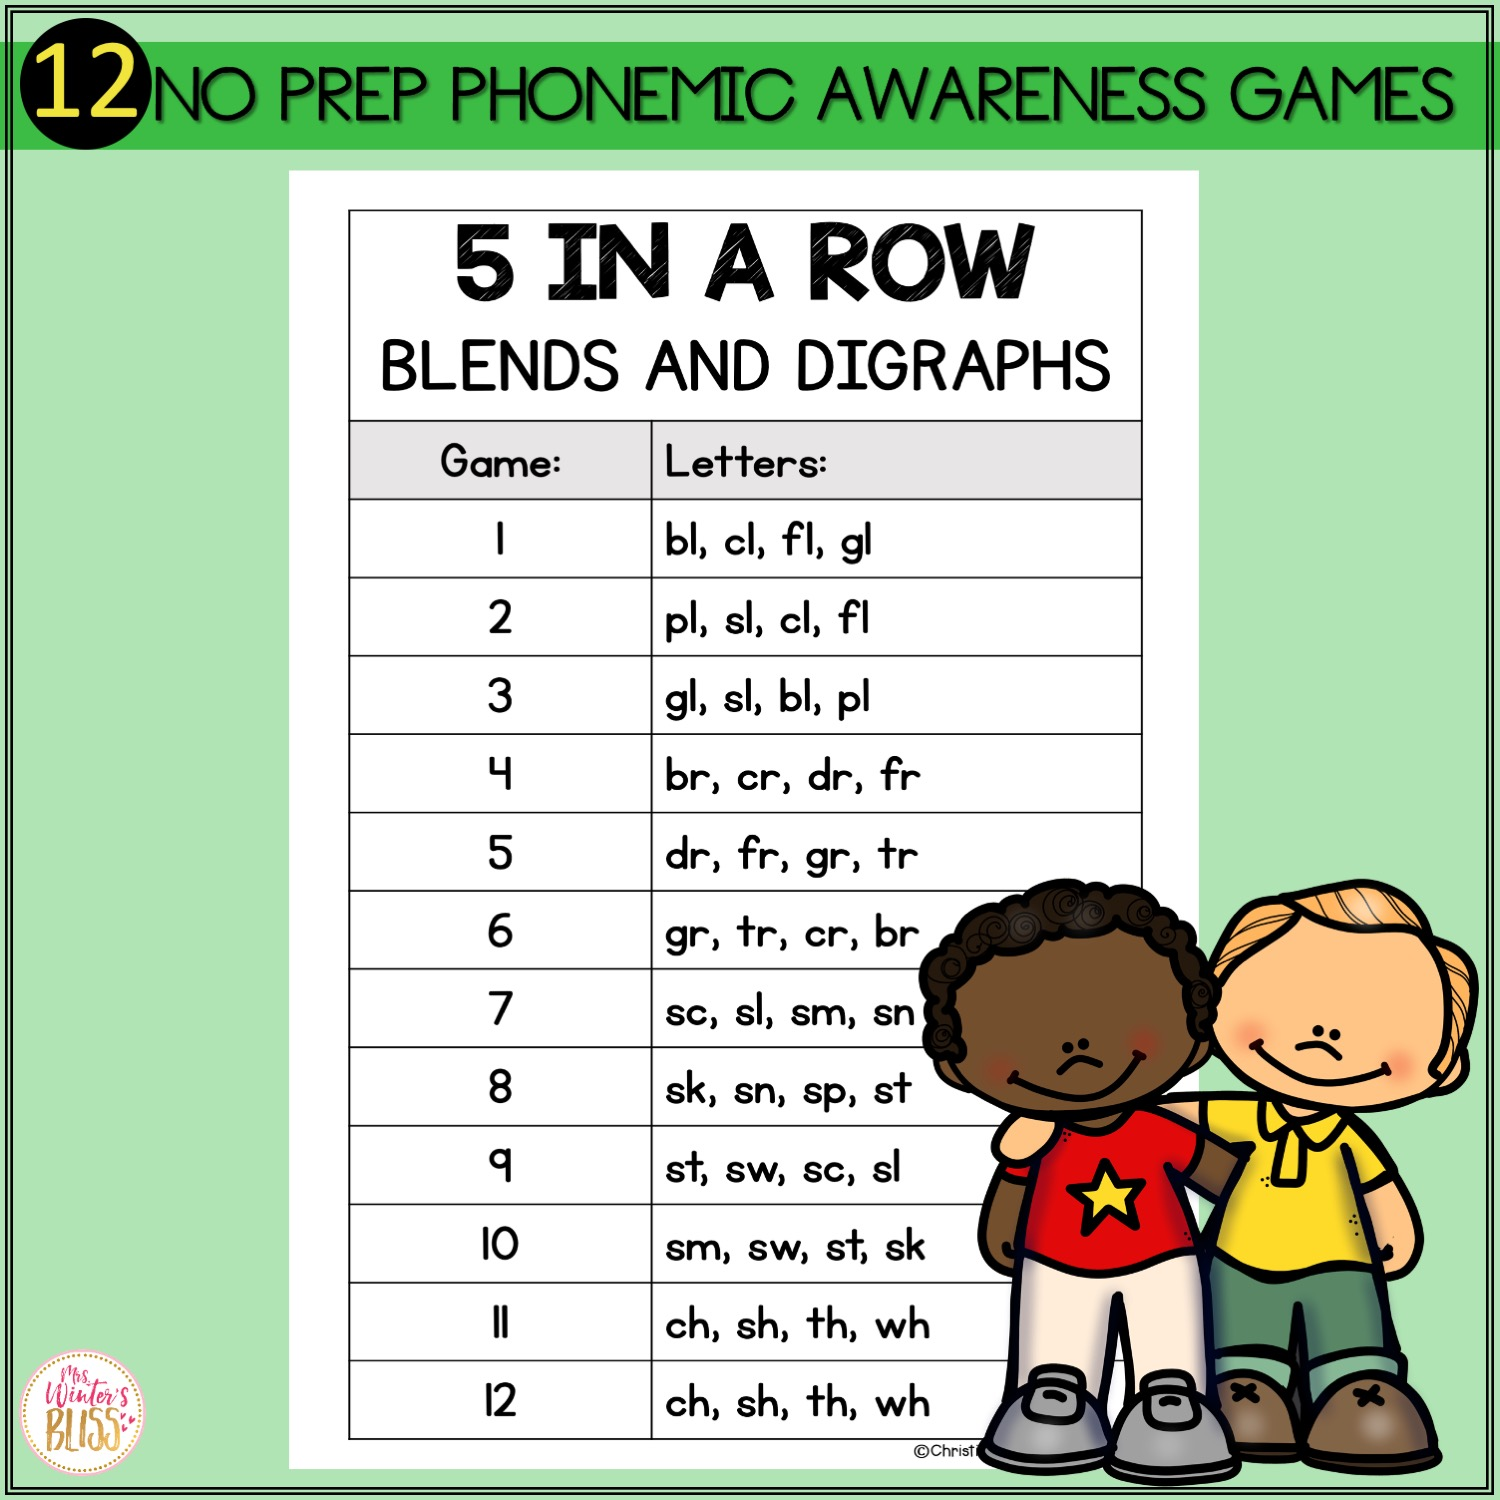 hight resolution of Phonemic Awareness Activities - Blends and Digraphs Worksheet Games - Mrs.  Winter's Bliss